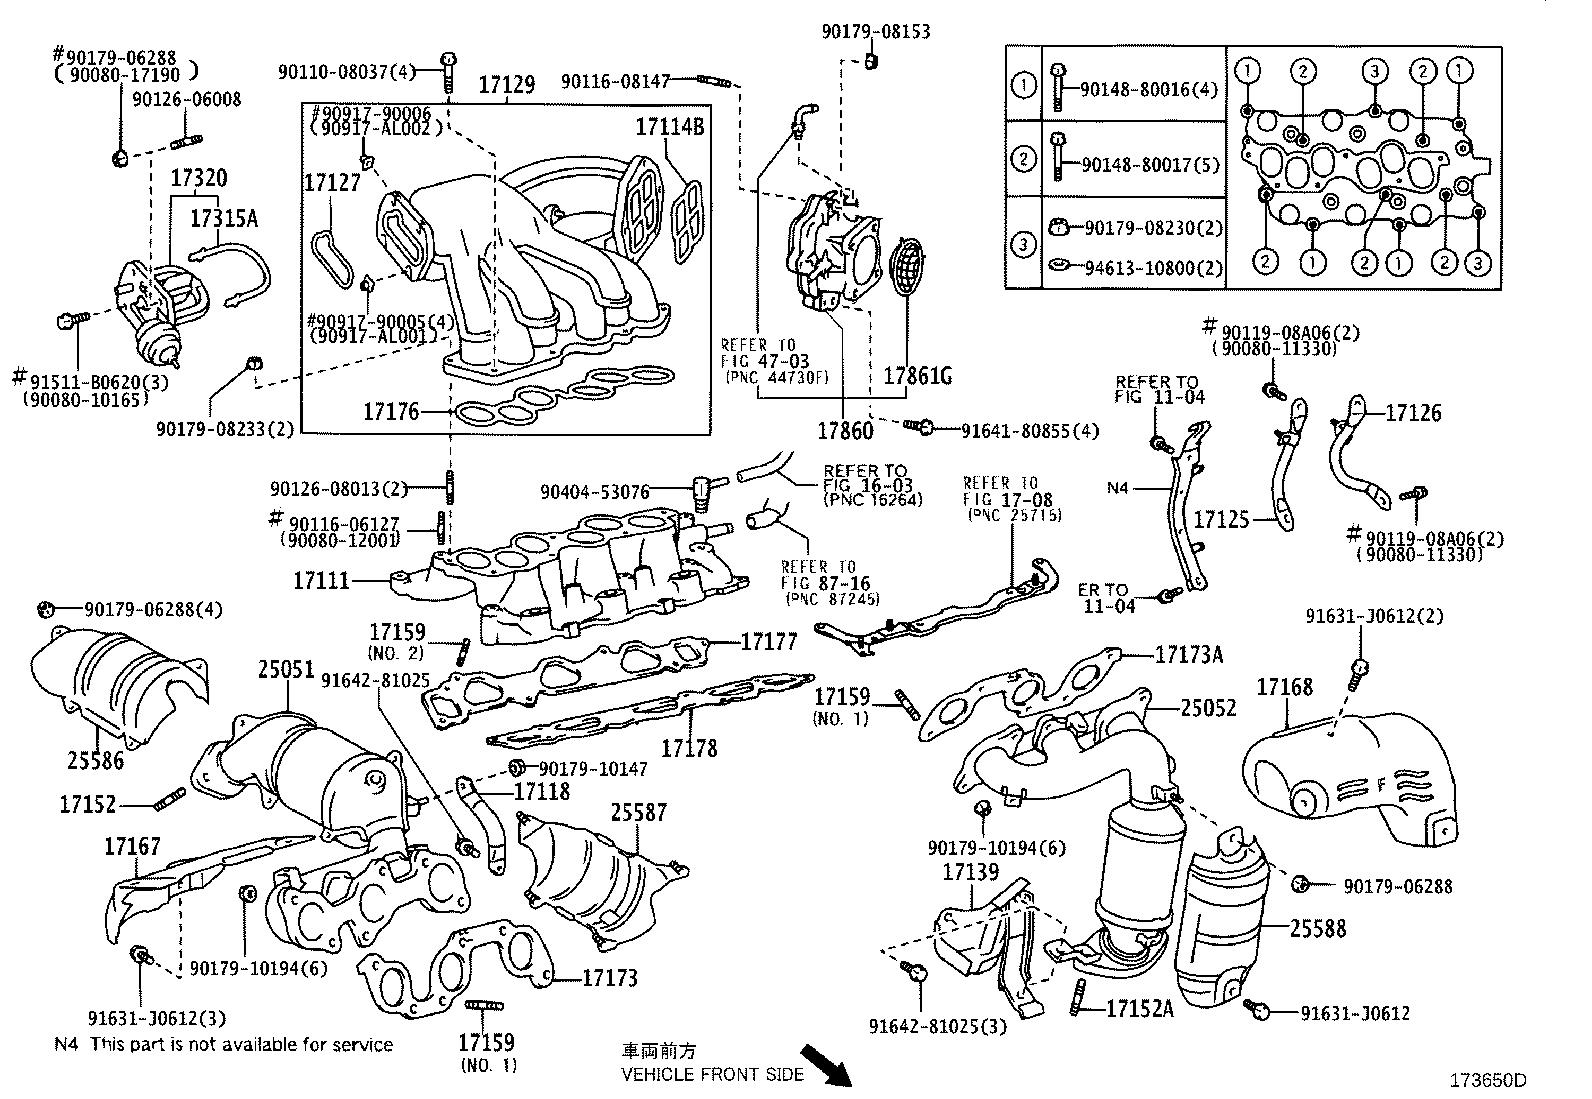 2505220190 - Catalytic Converter With Integrated Exhaust Manifold